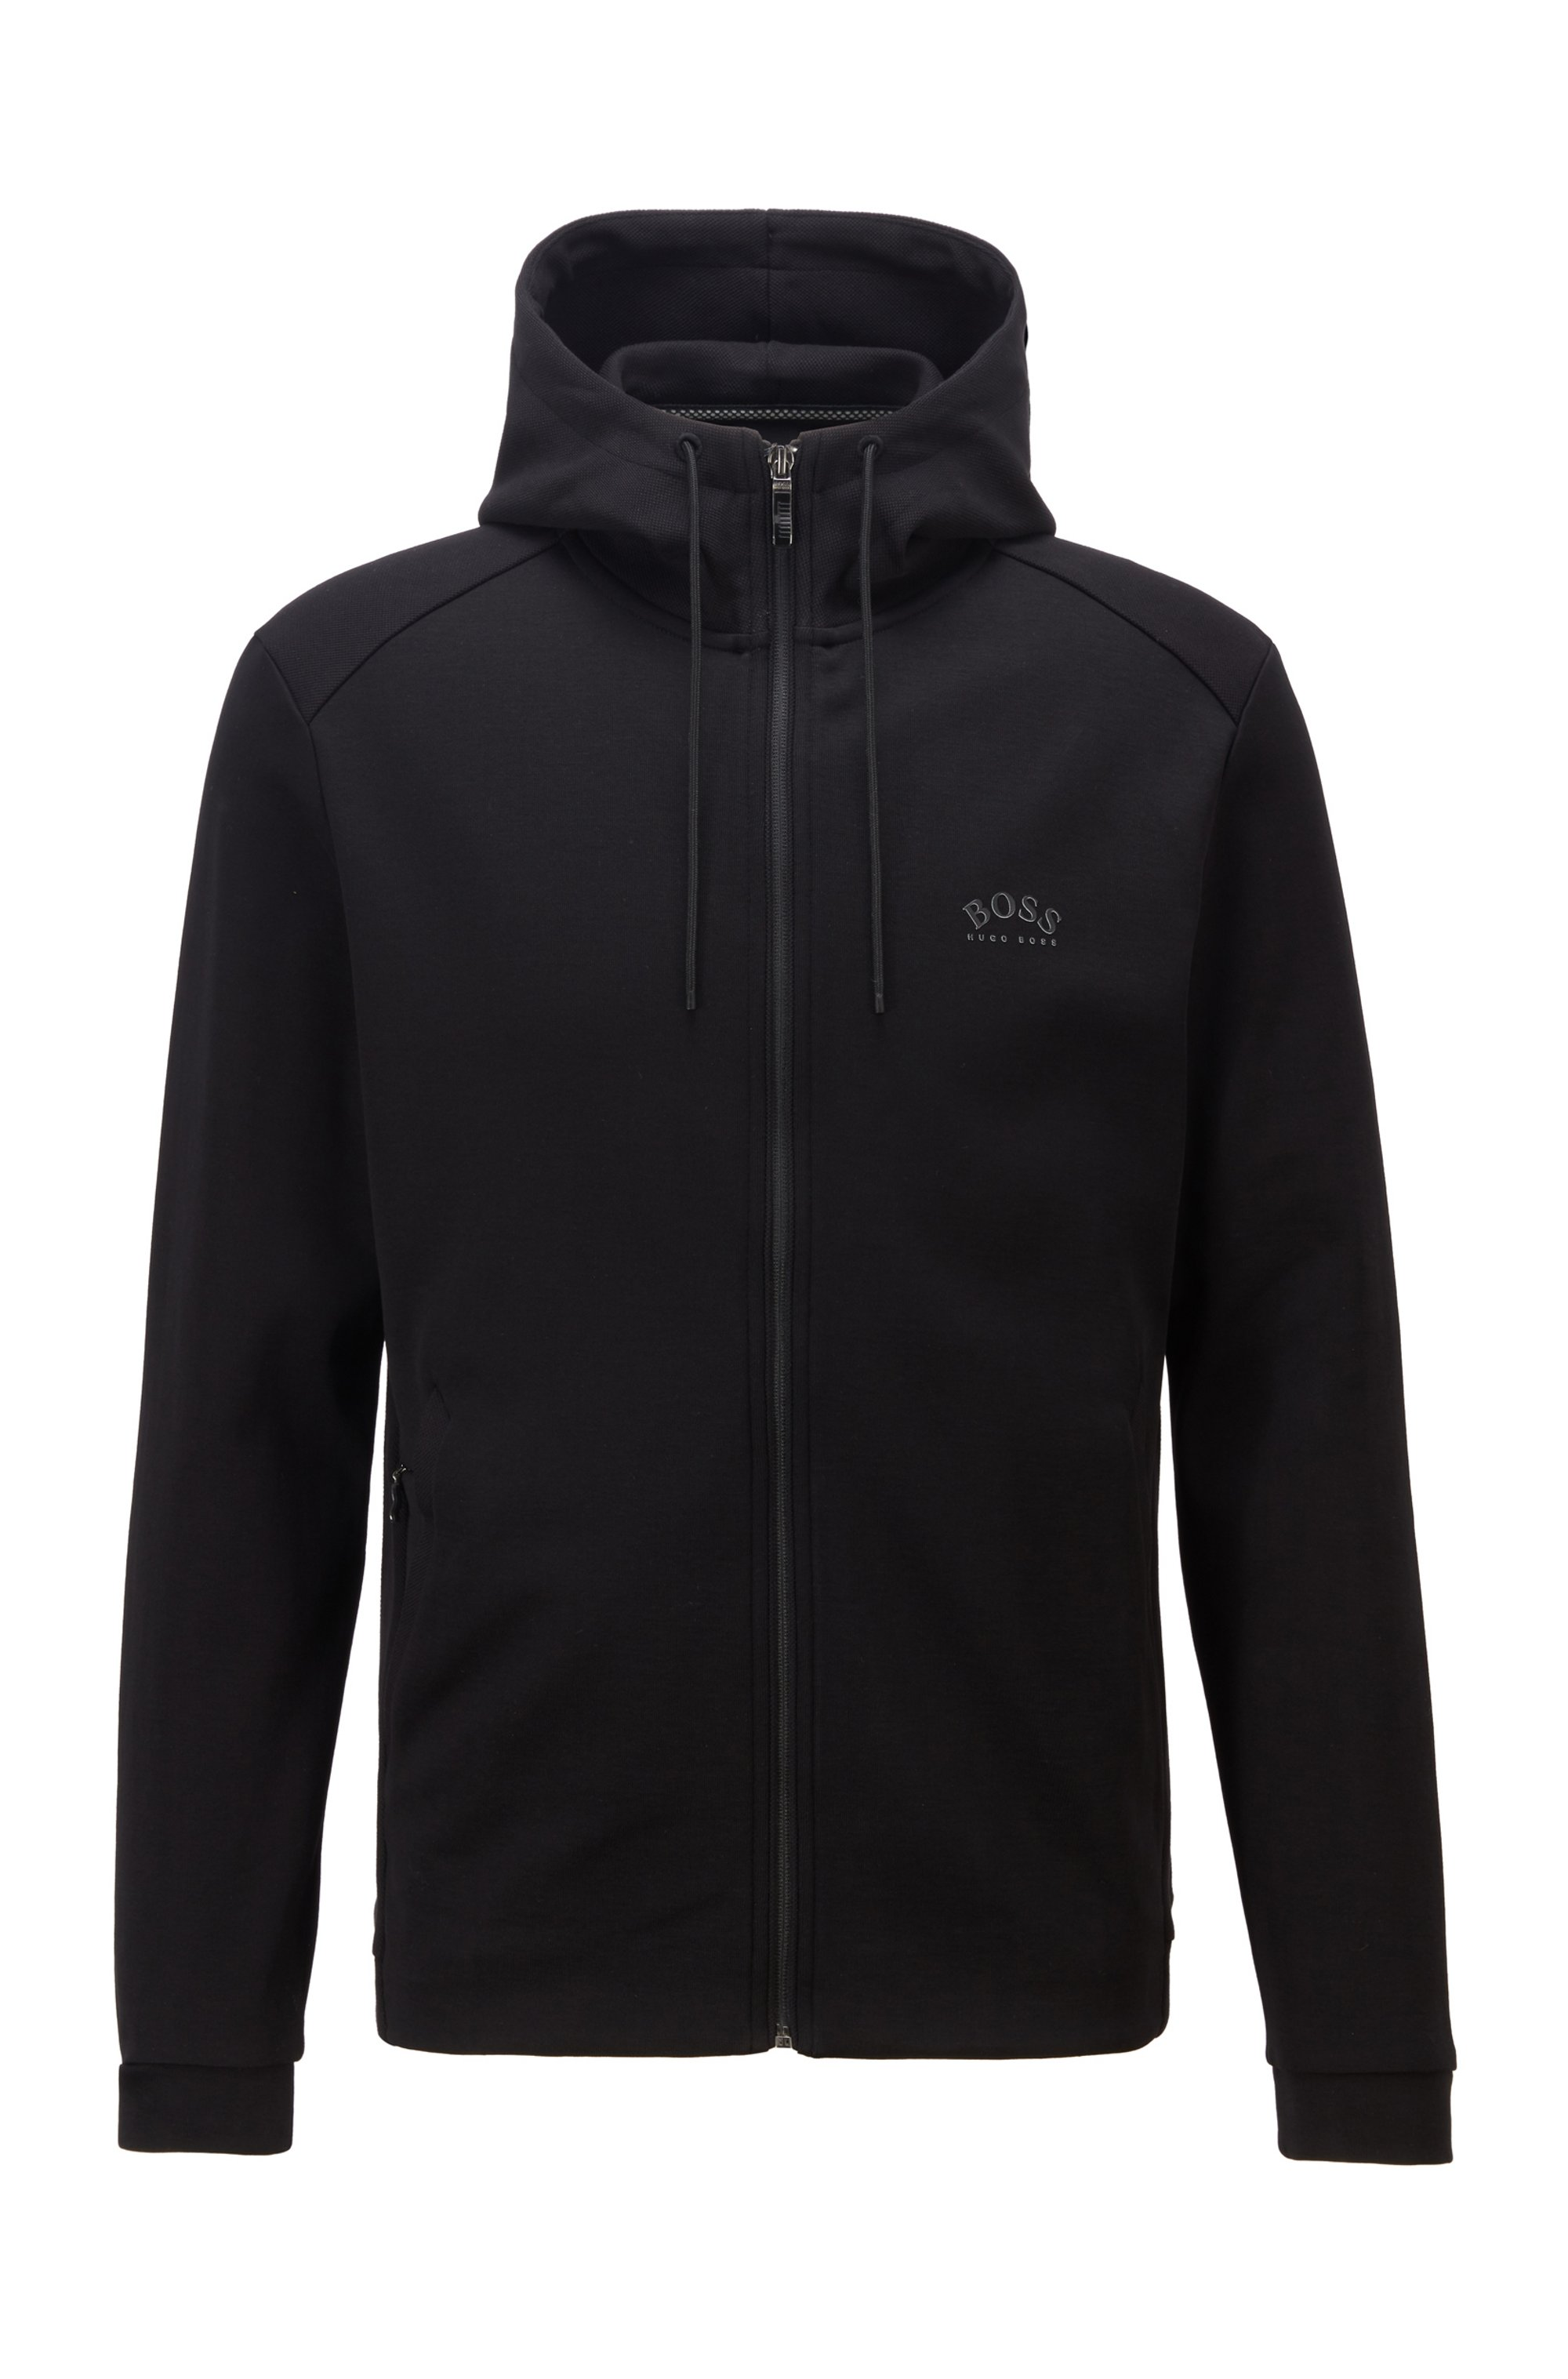 Hybrid sweatshirt in cotton-blend fabrics with curved logo, Black